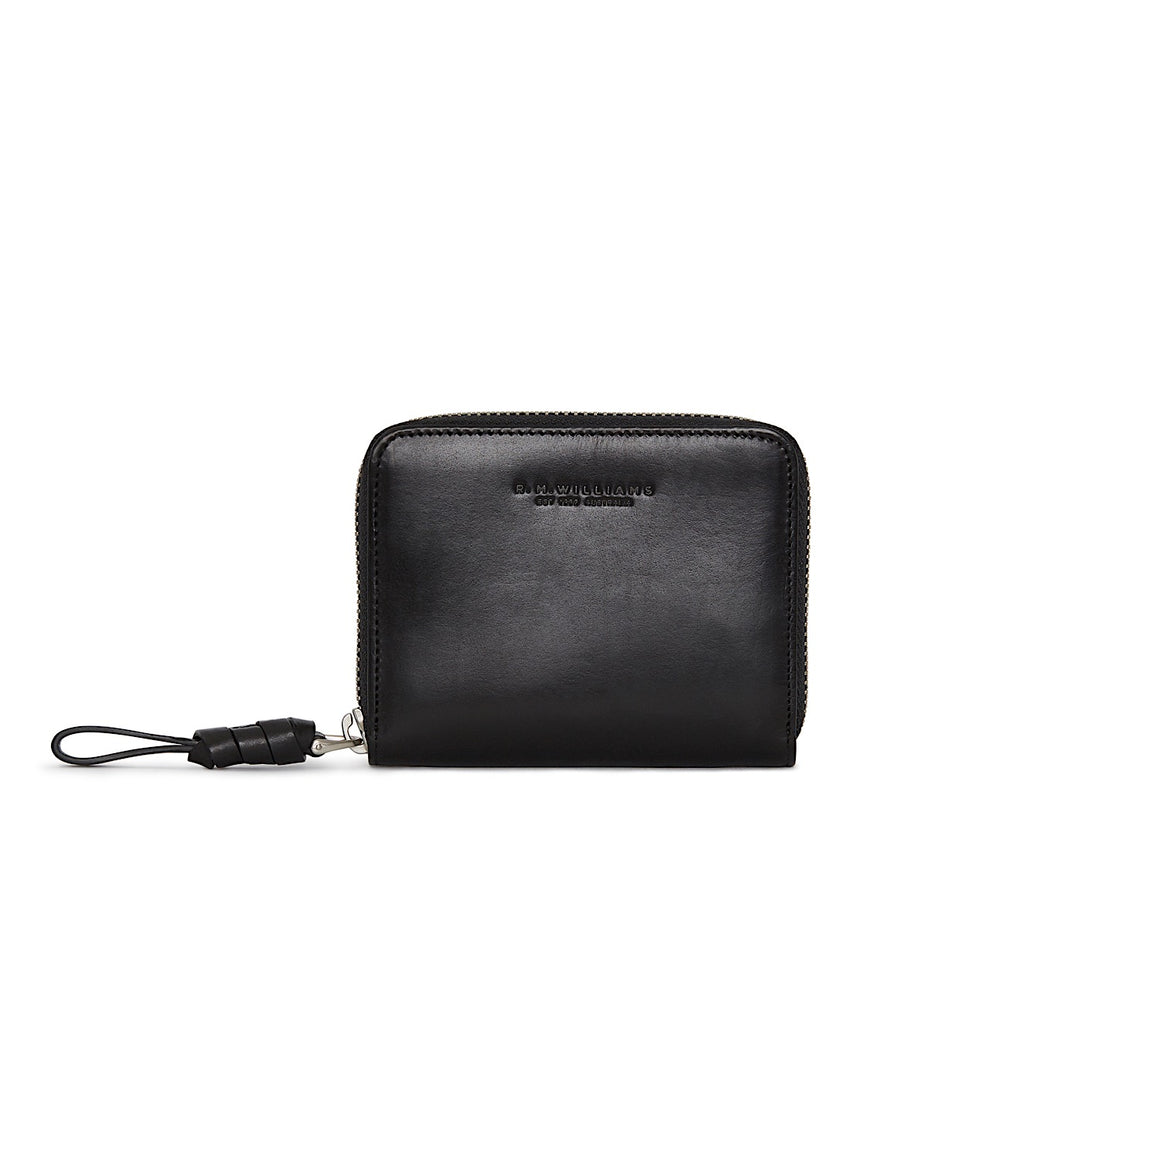 R.M.Williams Womens City Short Zip Wallet Black